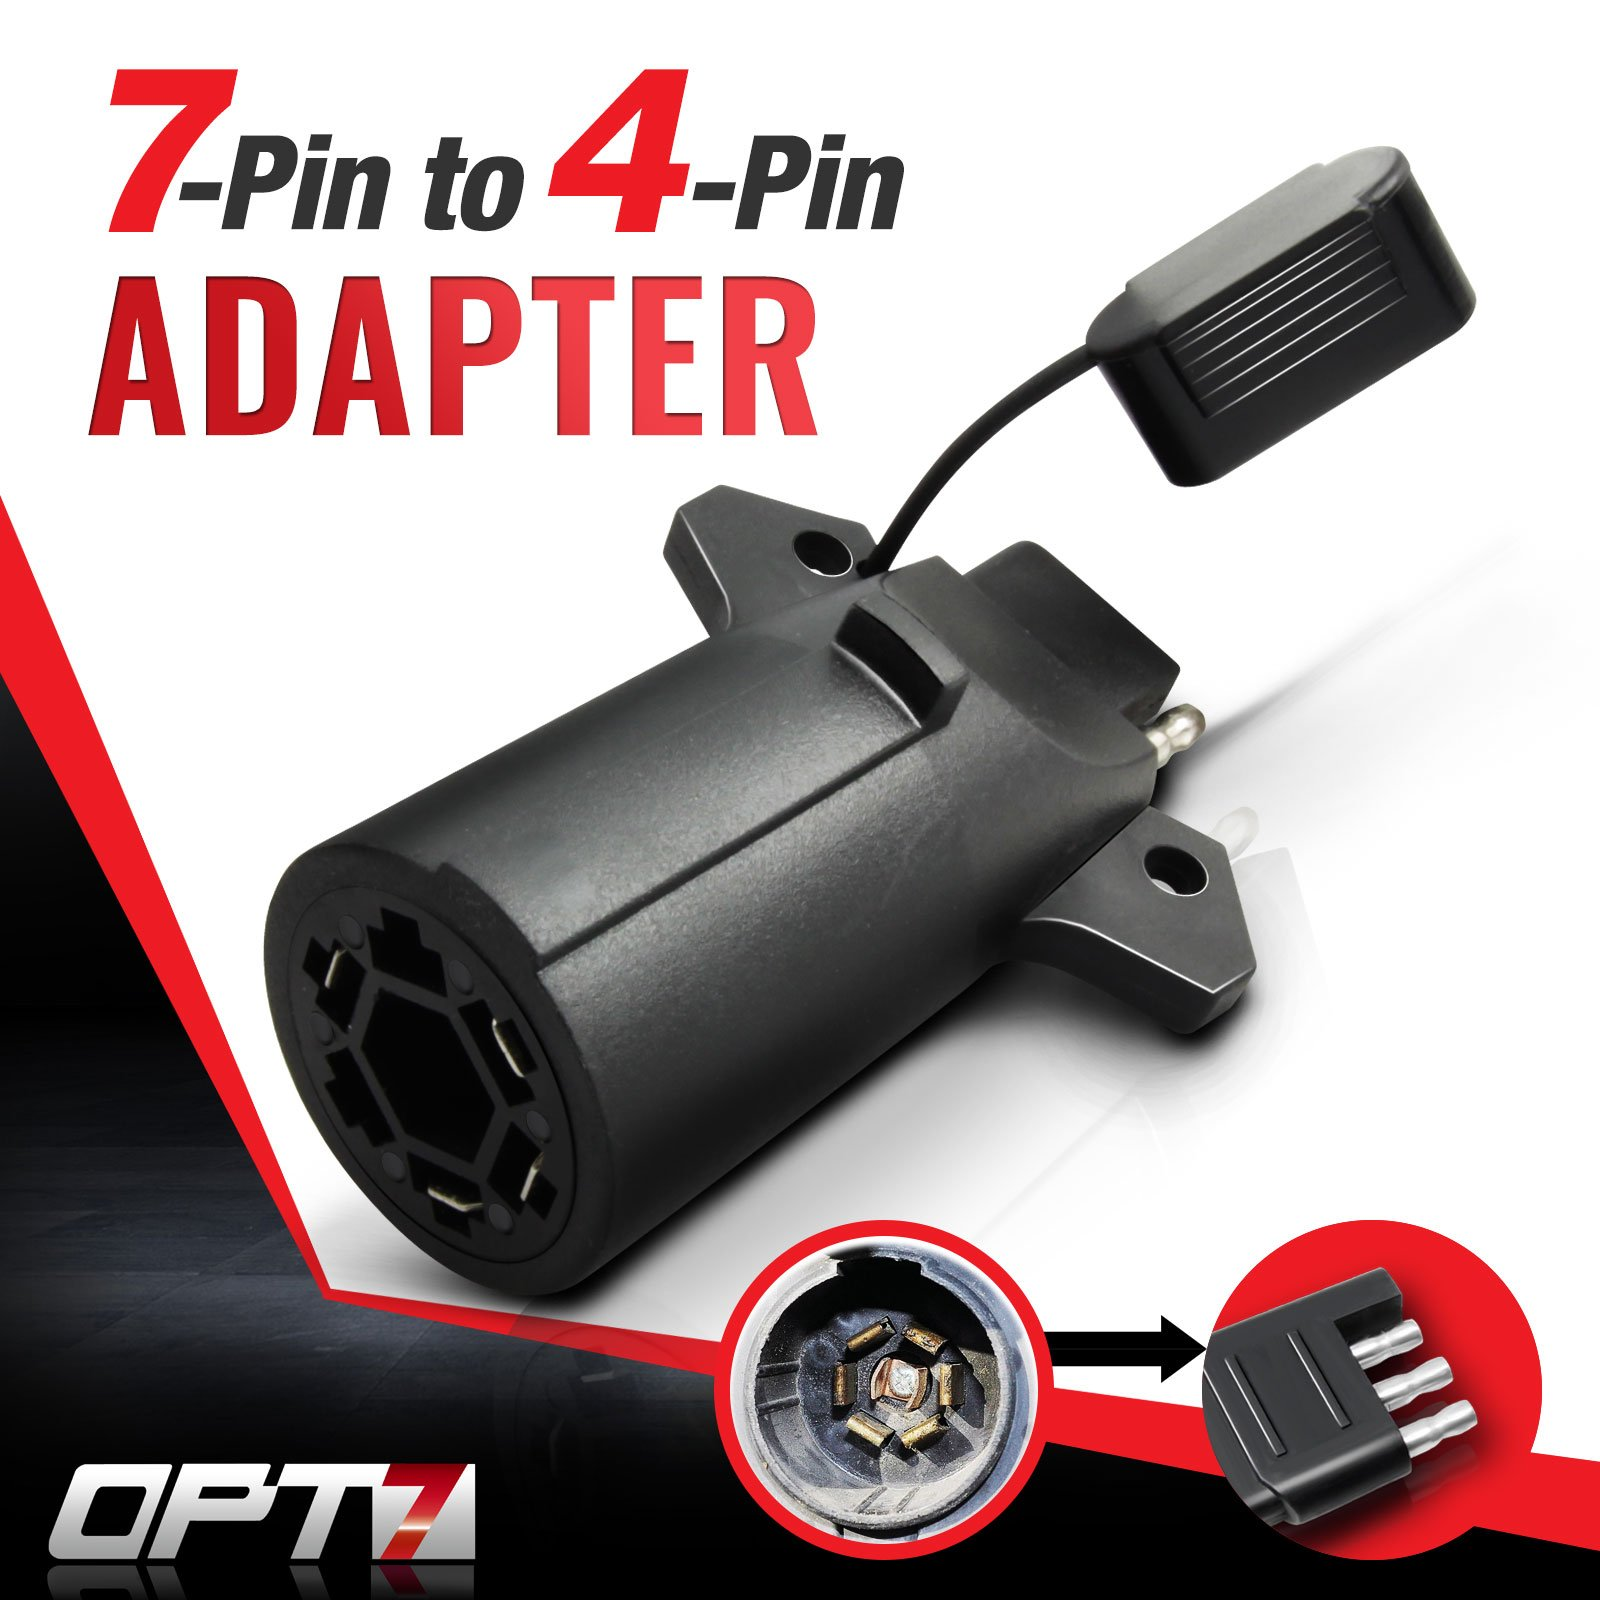 OPT7 Weatherproof 7 Way Flat Blade to 4 Way Pin Adapter w/ Secure Tab -